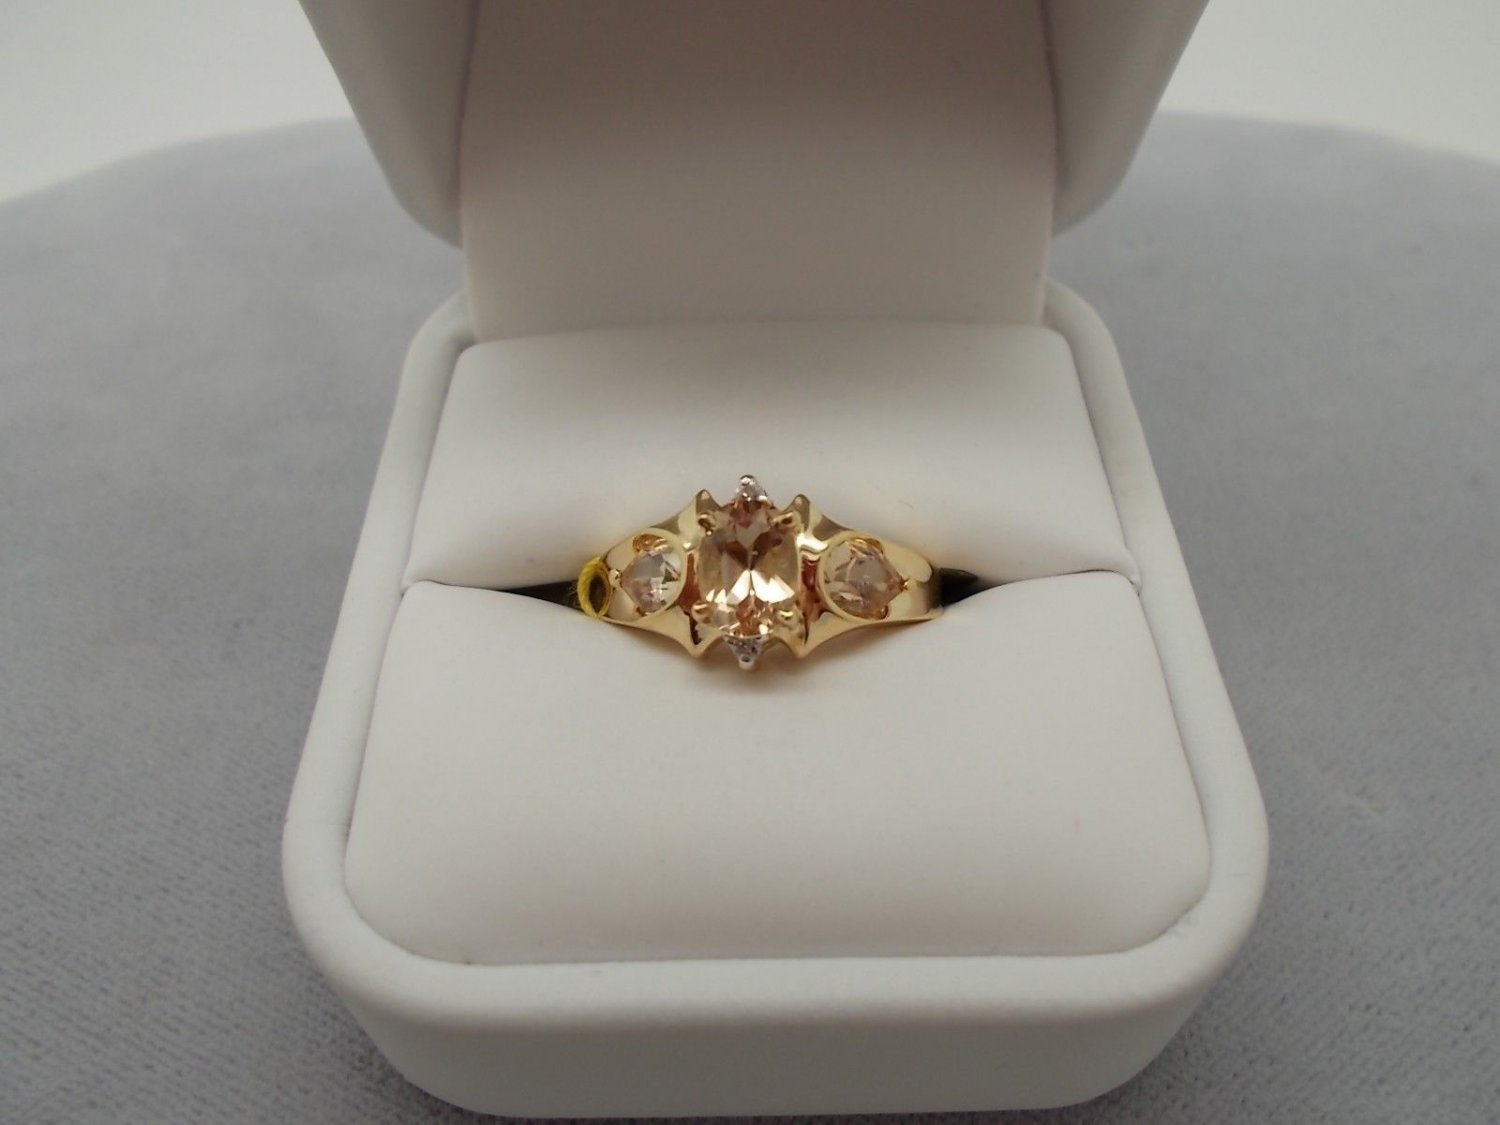 10K Gold 1ct Precious Genuine Natural Topaz Ring with Diamonds (#684)